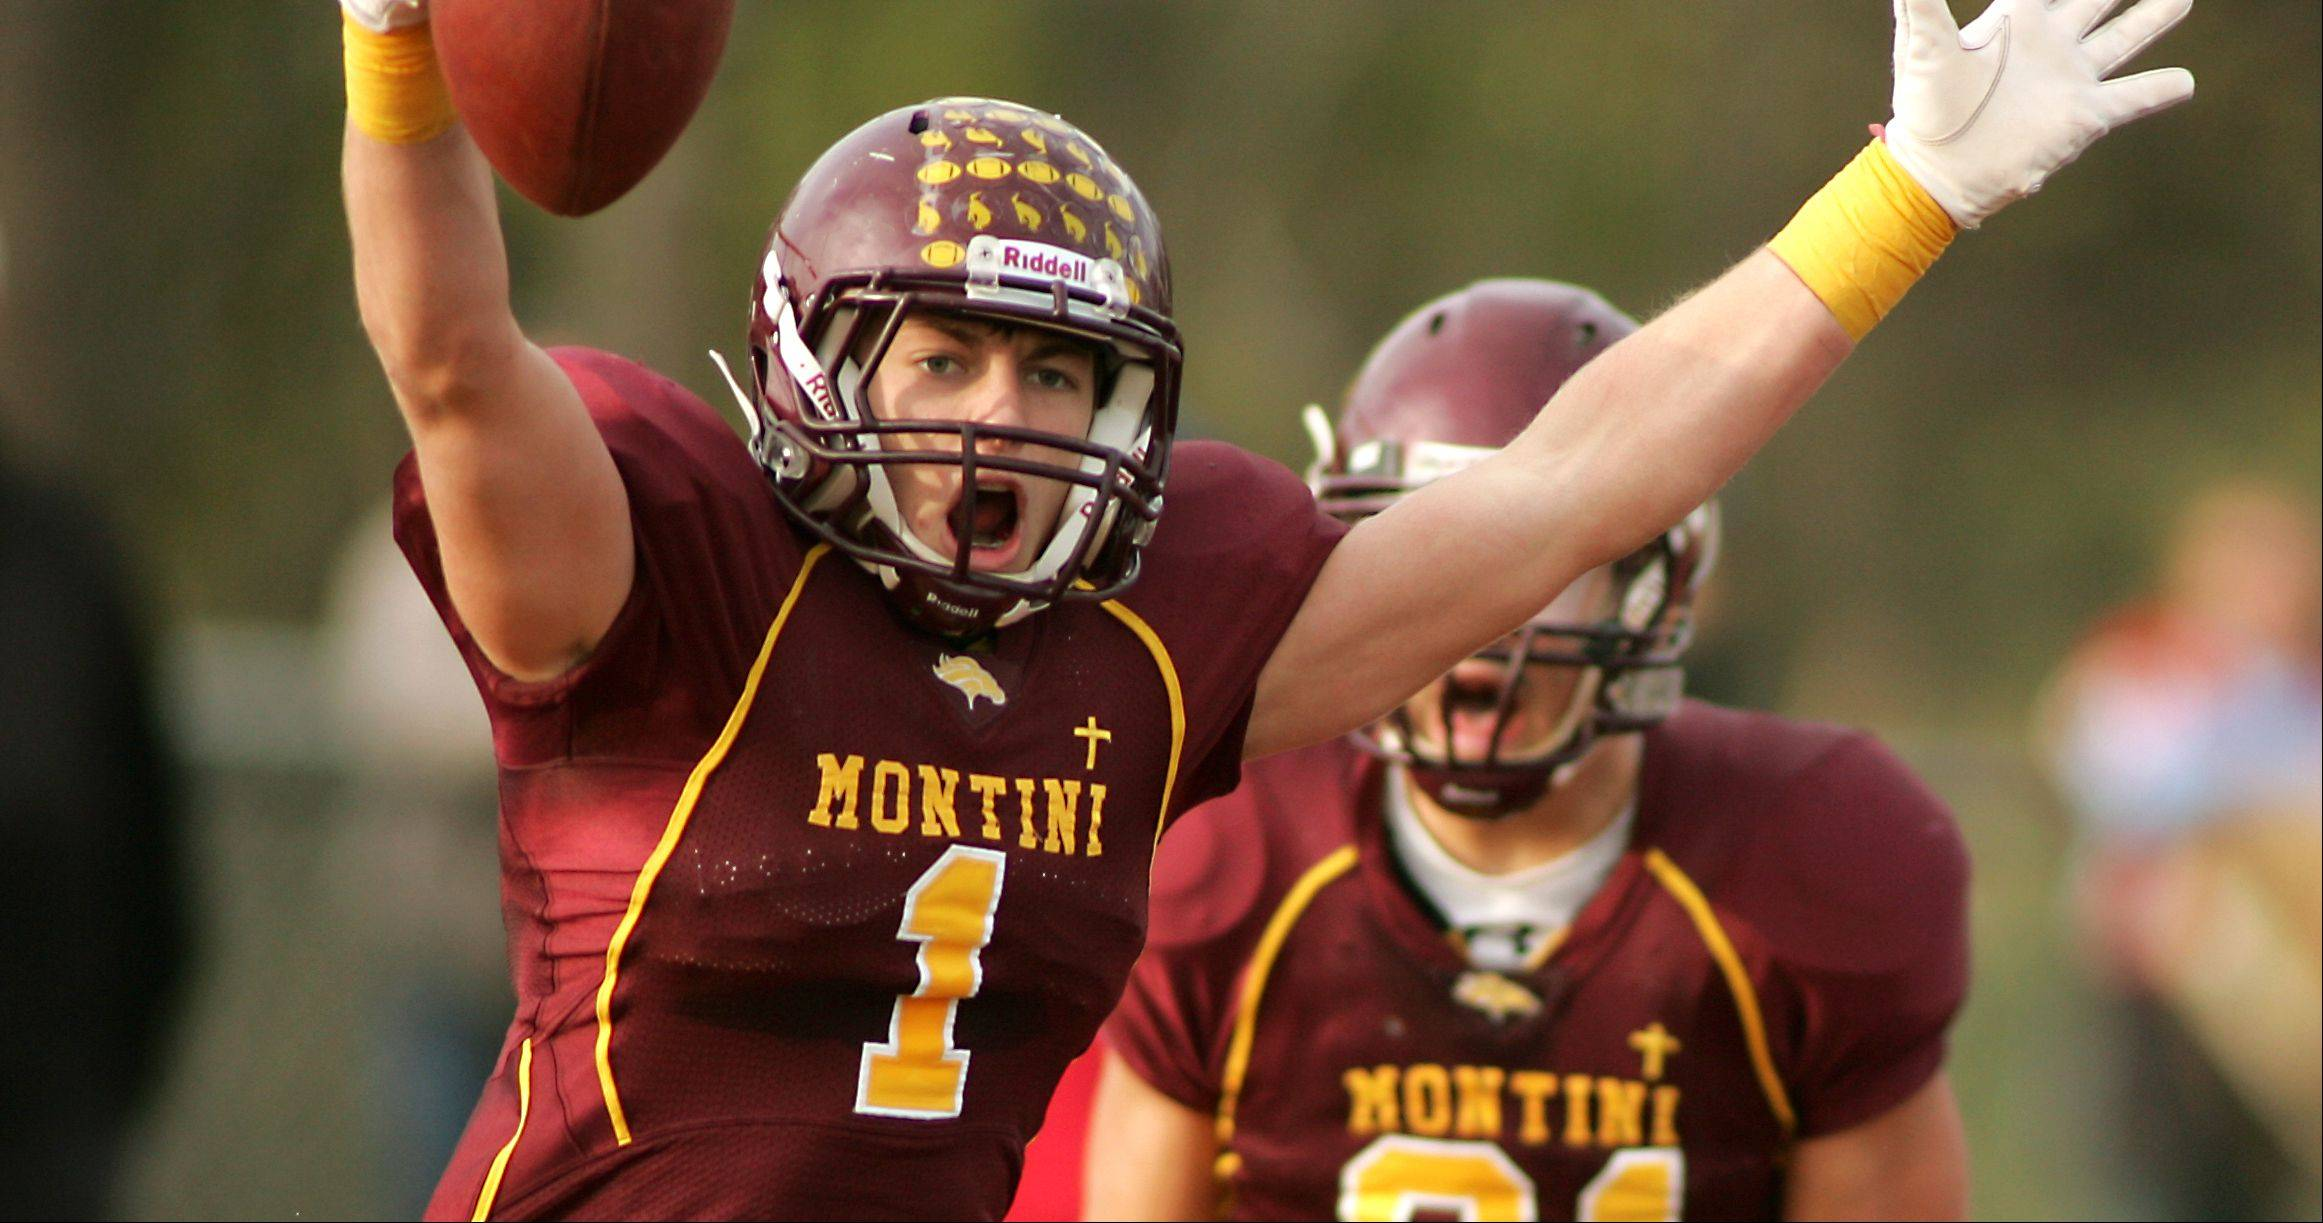 Joe Borsellino, 1, celebrates his touchdown catch during Montini's 52-27 win over Marian Central.